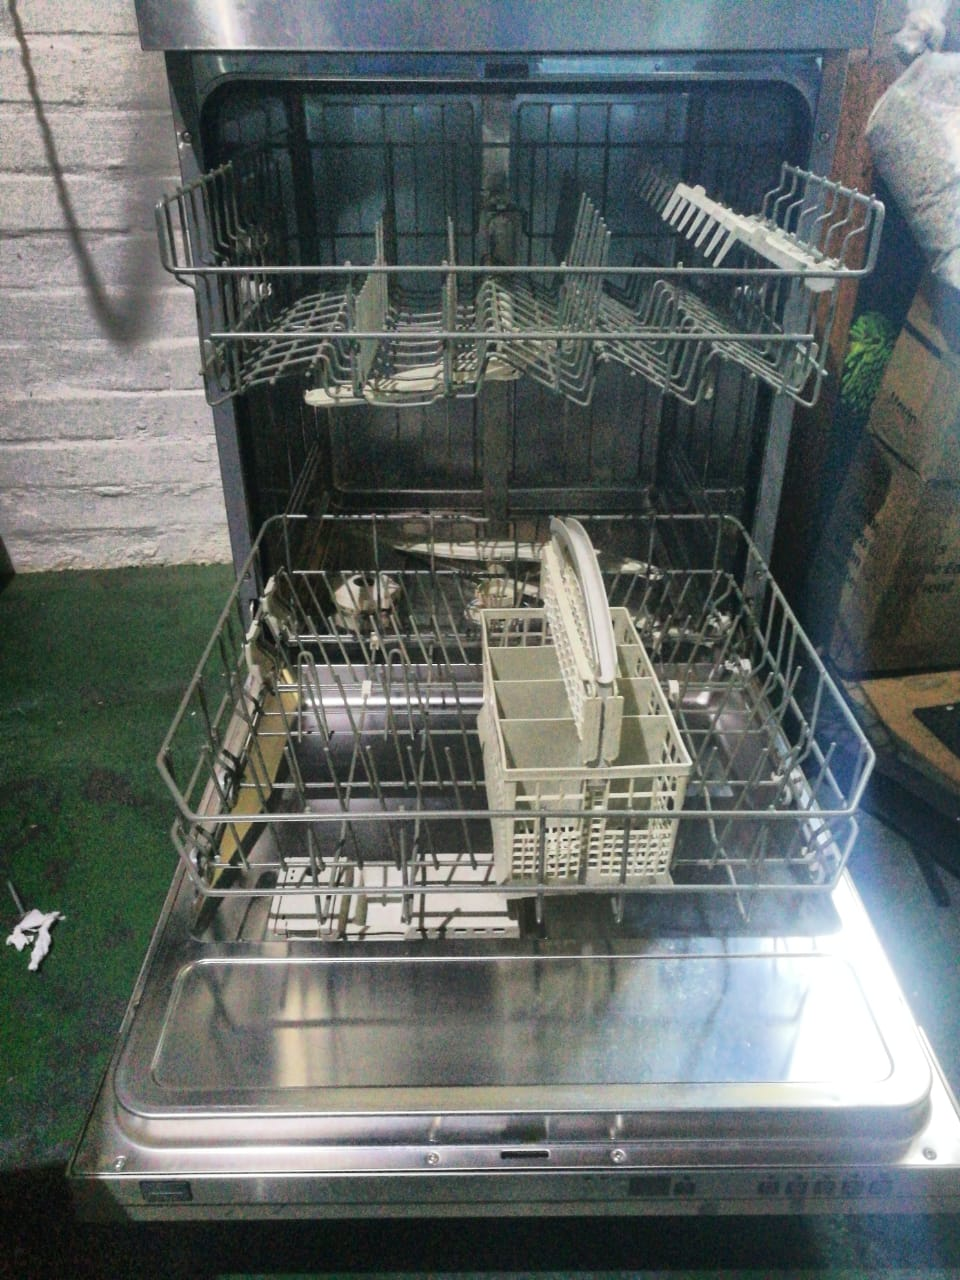 Siemens iQ300 Dishwasher For Sale